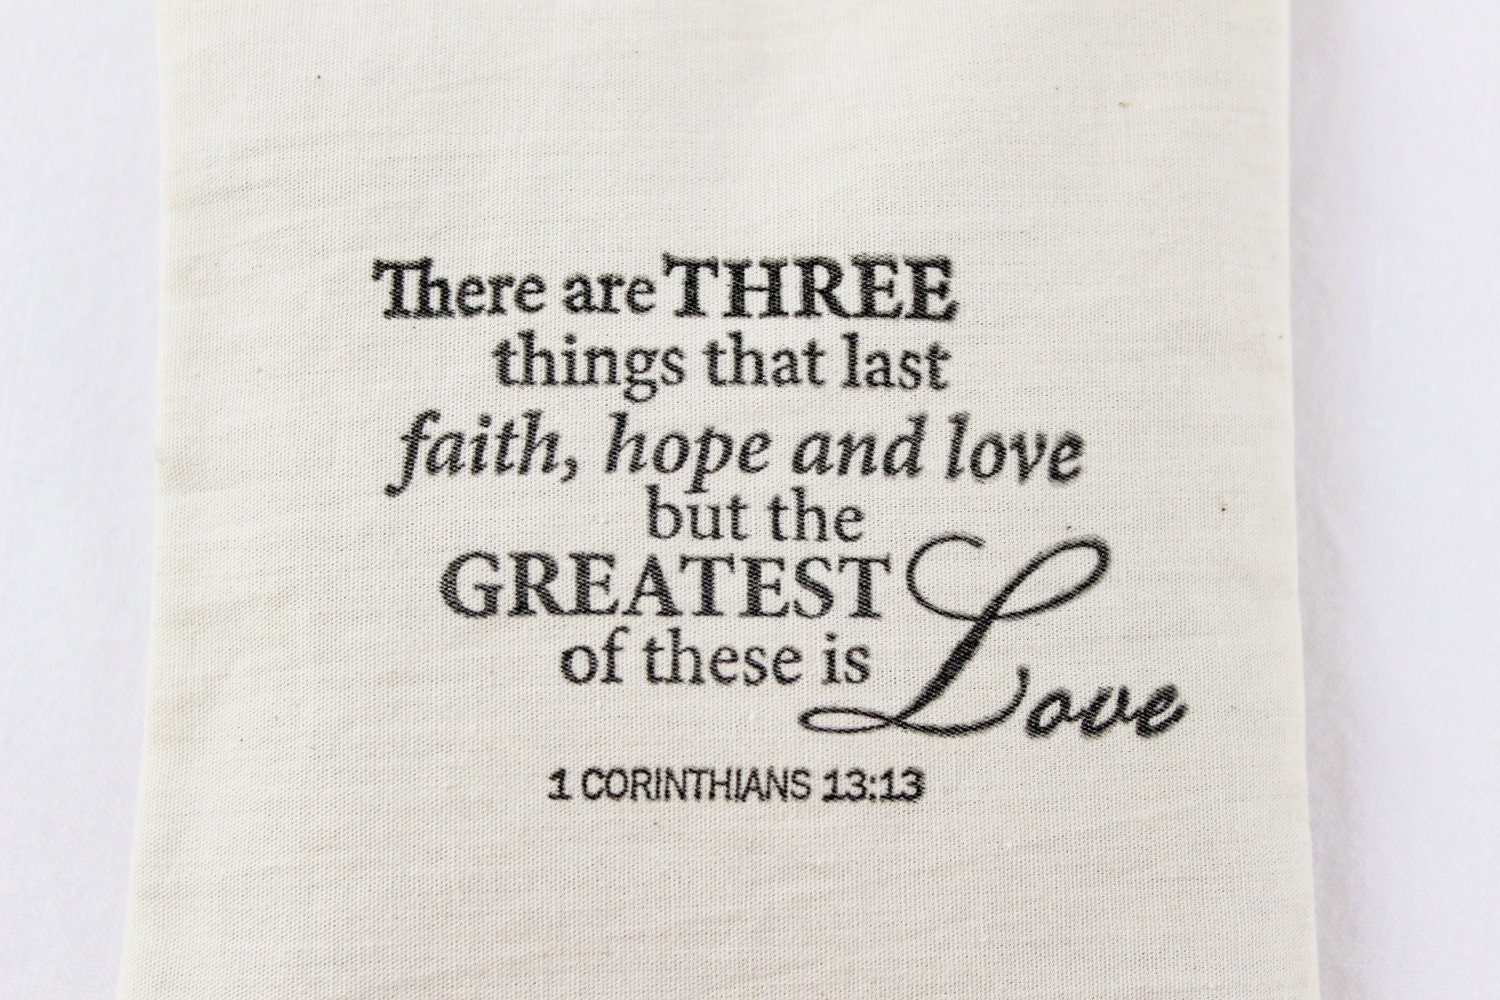 Love Faith Hope Quotes Faith Hope Love Lavender Sachet 1 Corinthians 13 Bible Verse